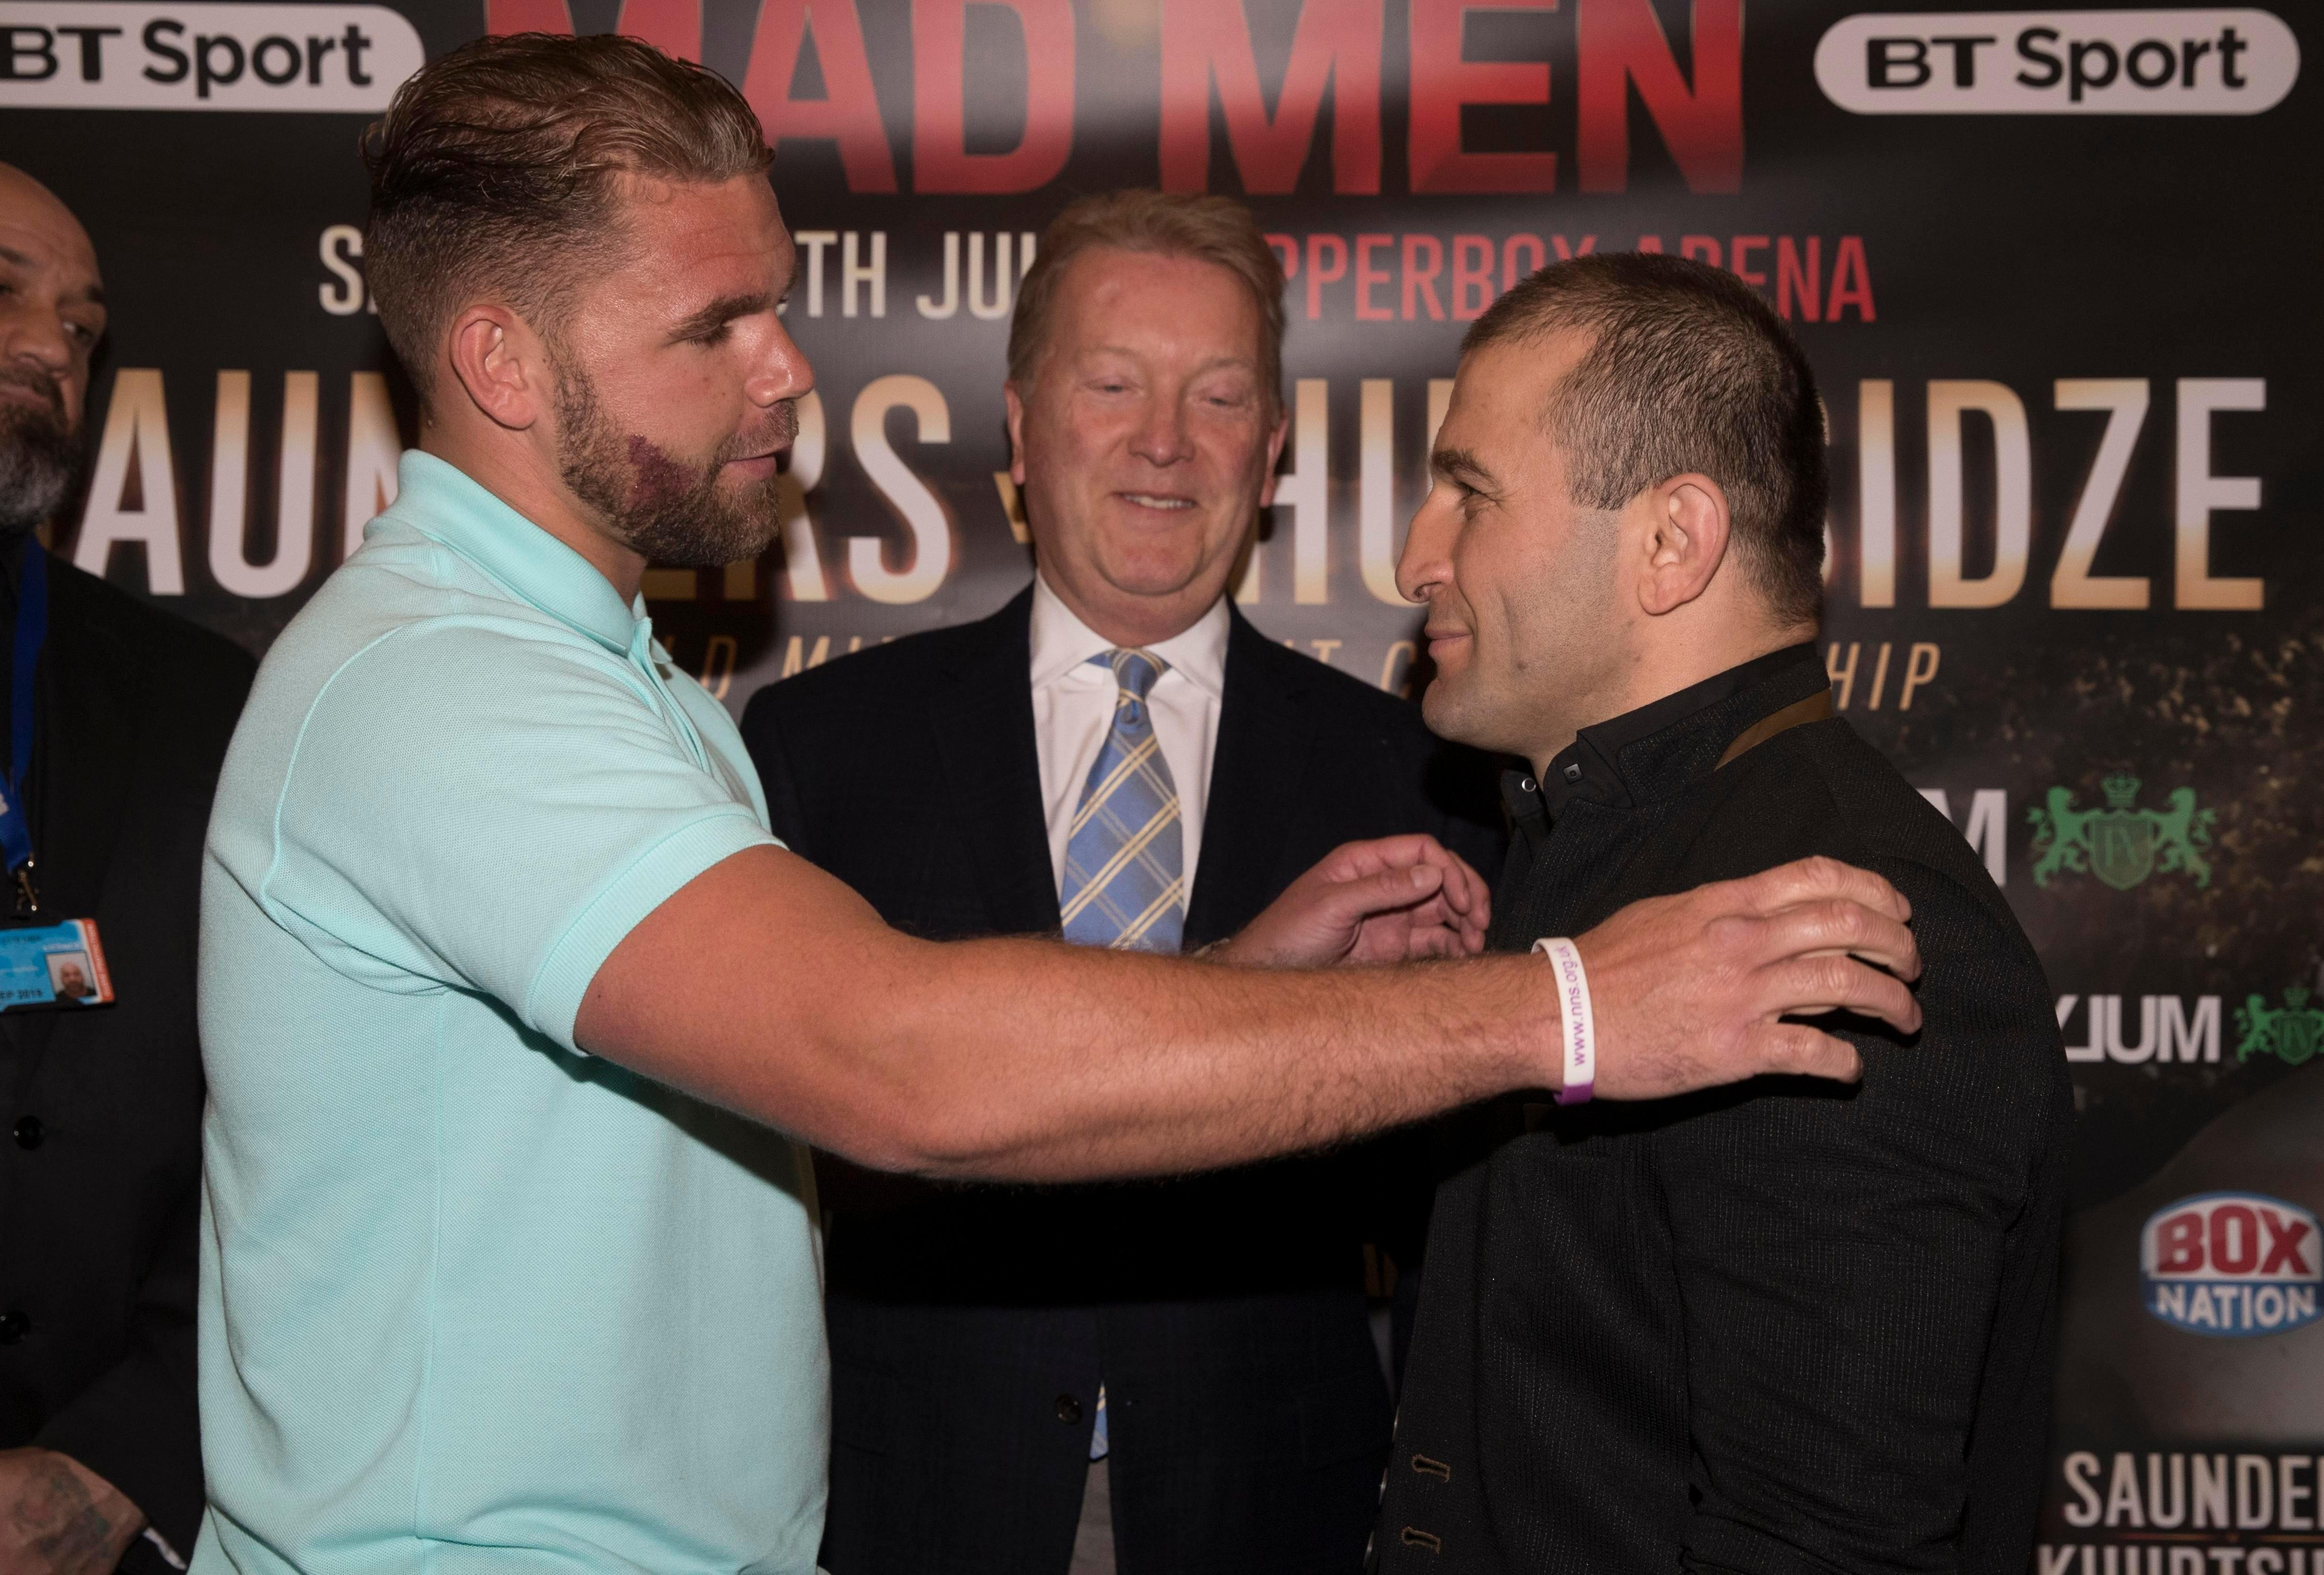 The Georgian was due to fight Billy Joe Saunders in 2017